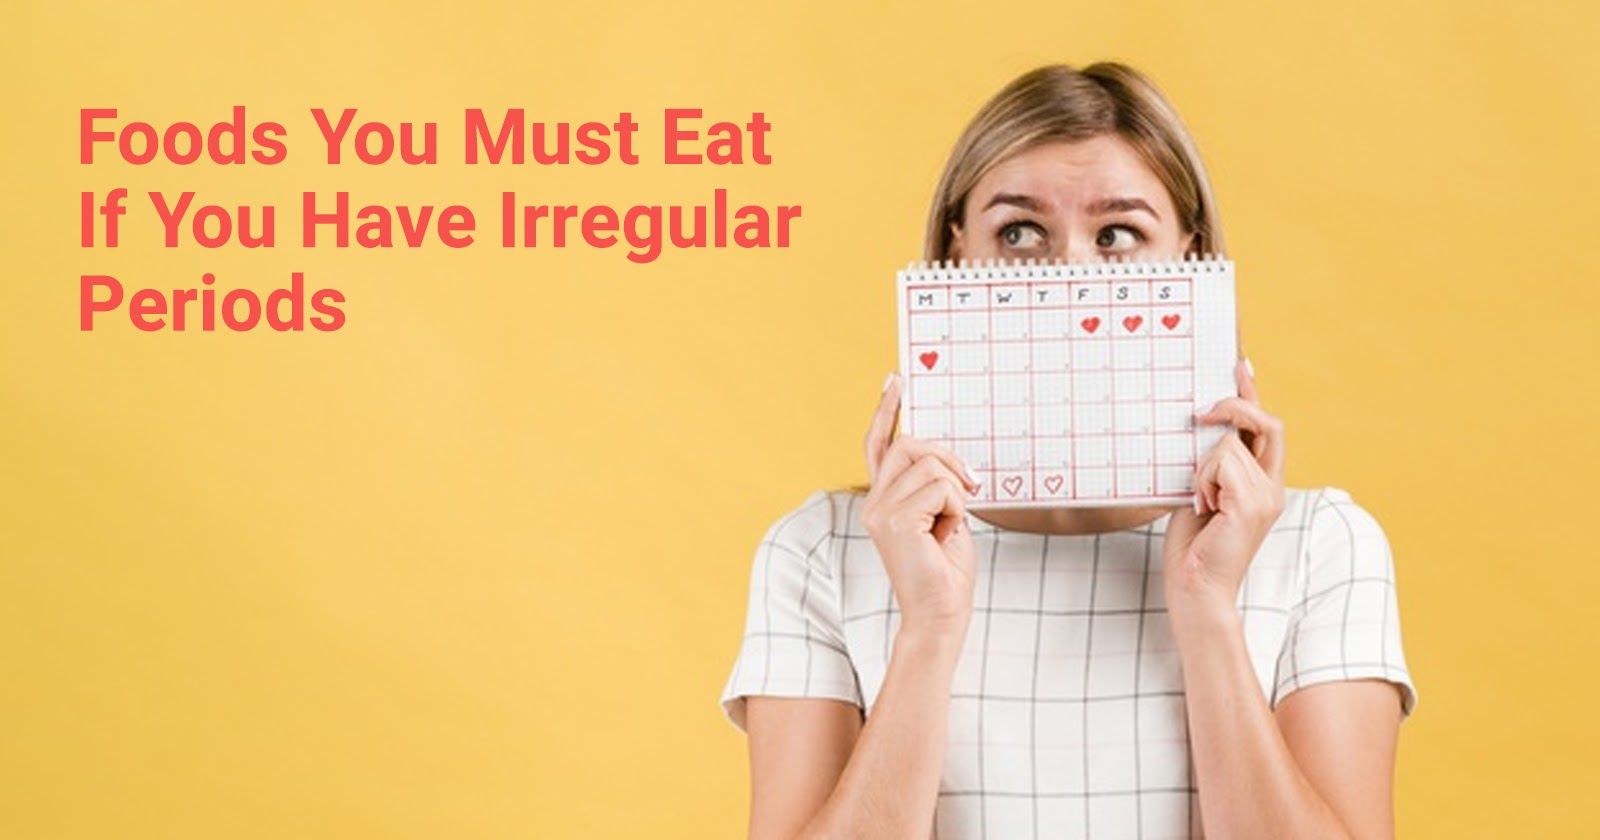 Foods You Must Eat If You Have Irregular Periods